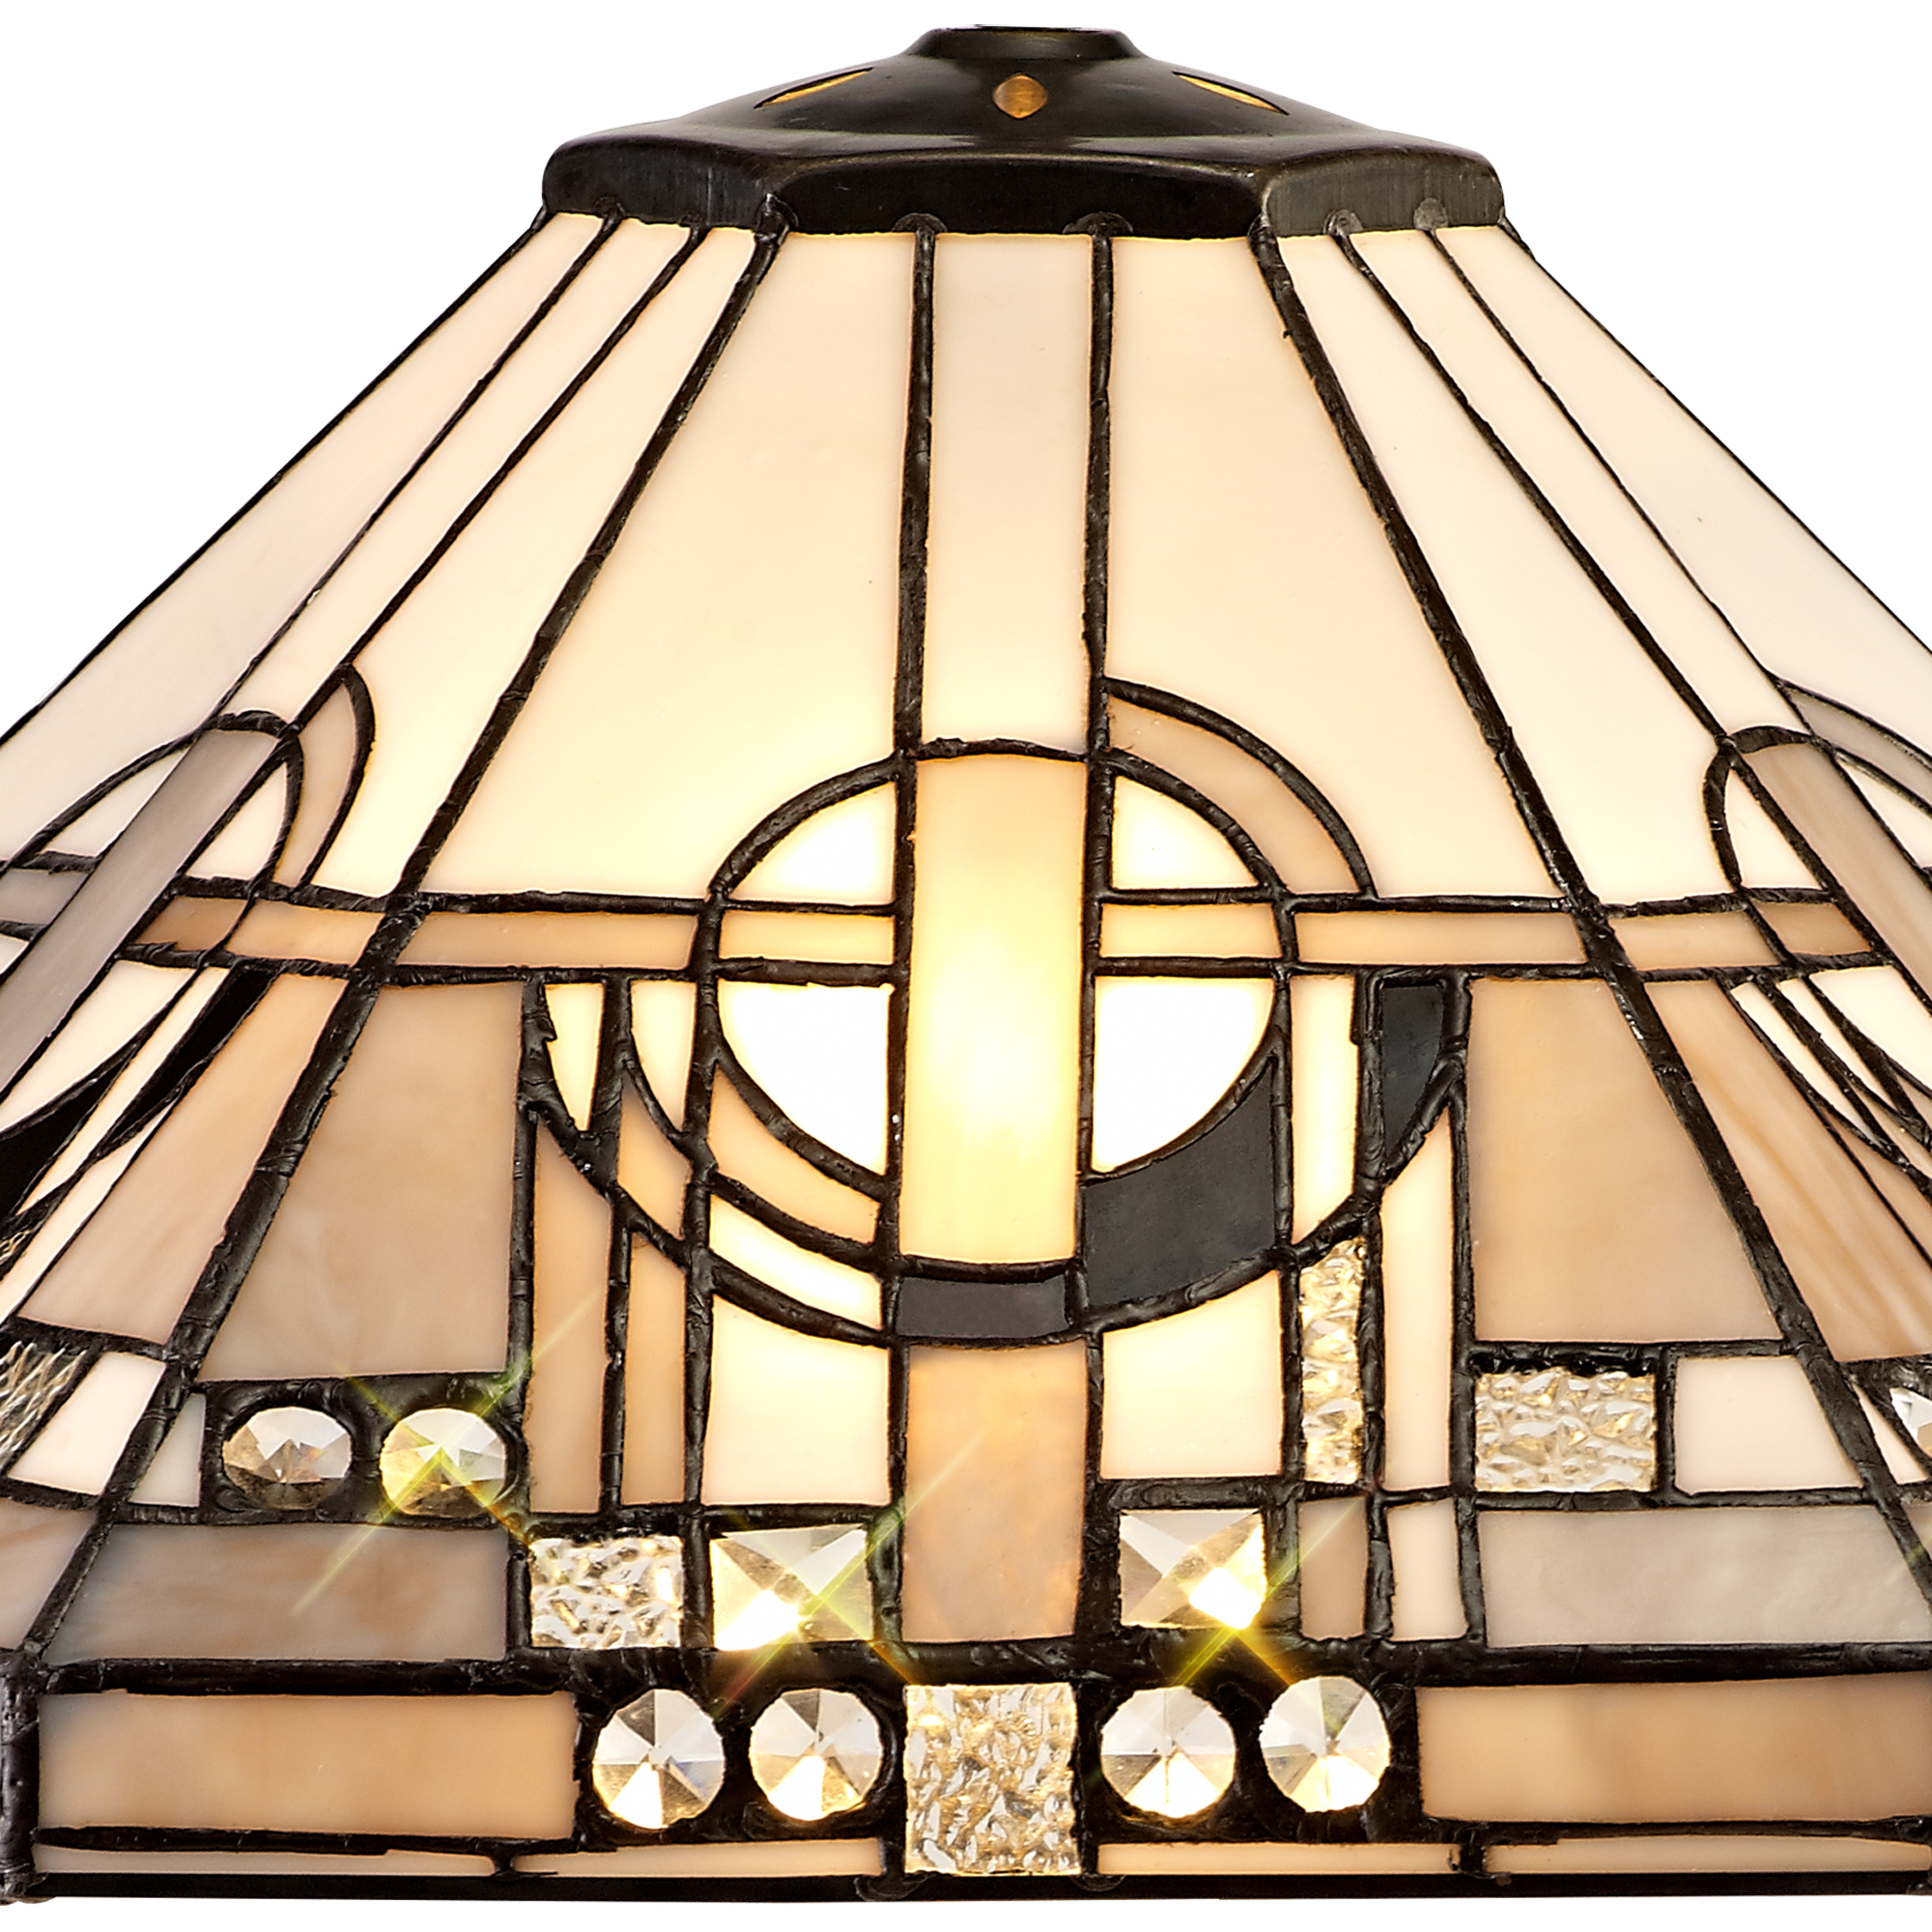 3 Light Uplighter Pendant E27 With 40cm Tiffany Shade, White/Grey/Black/Clear Crystal/Aged Antique Brass